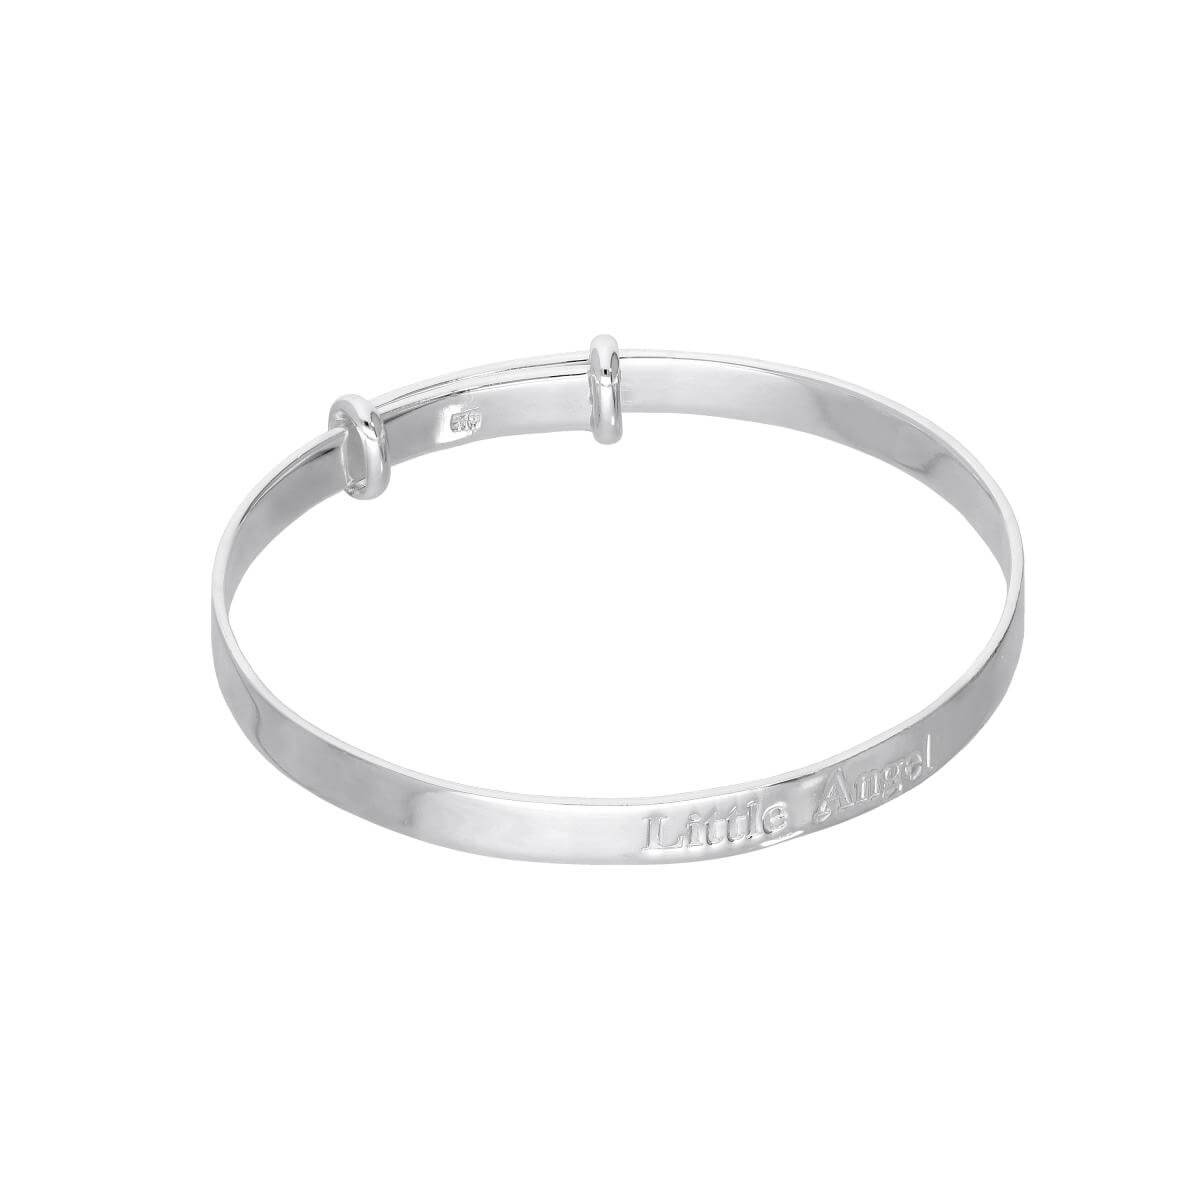 Sterling Silver 'Little Angel' Adjustable Babies Bangle